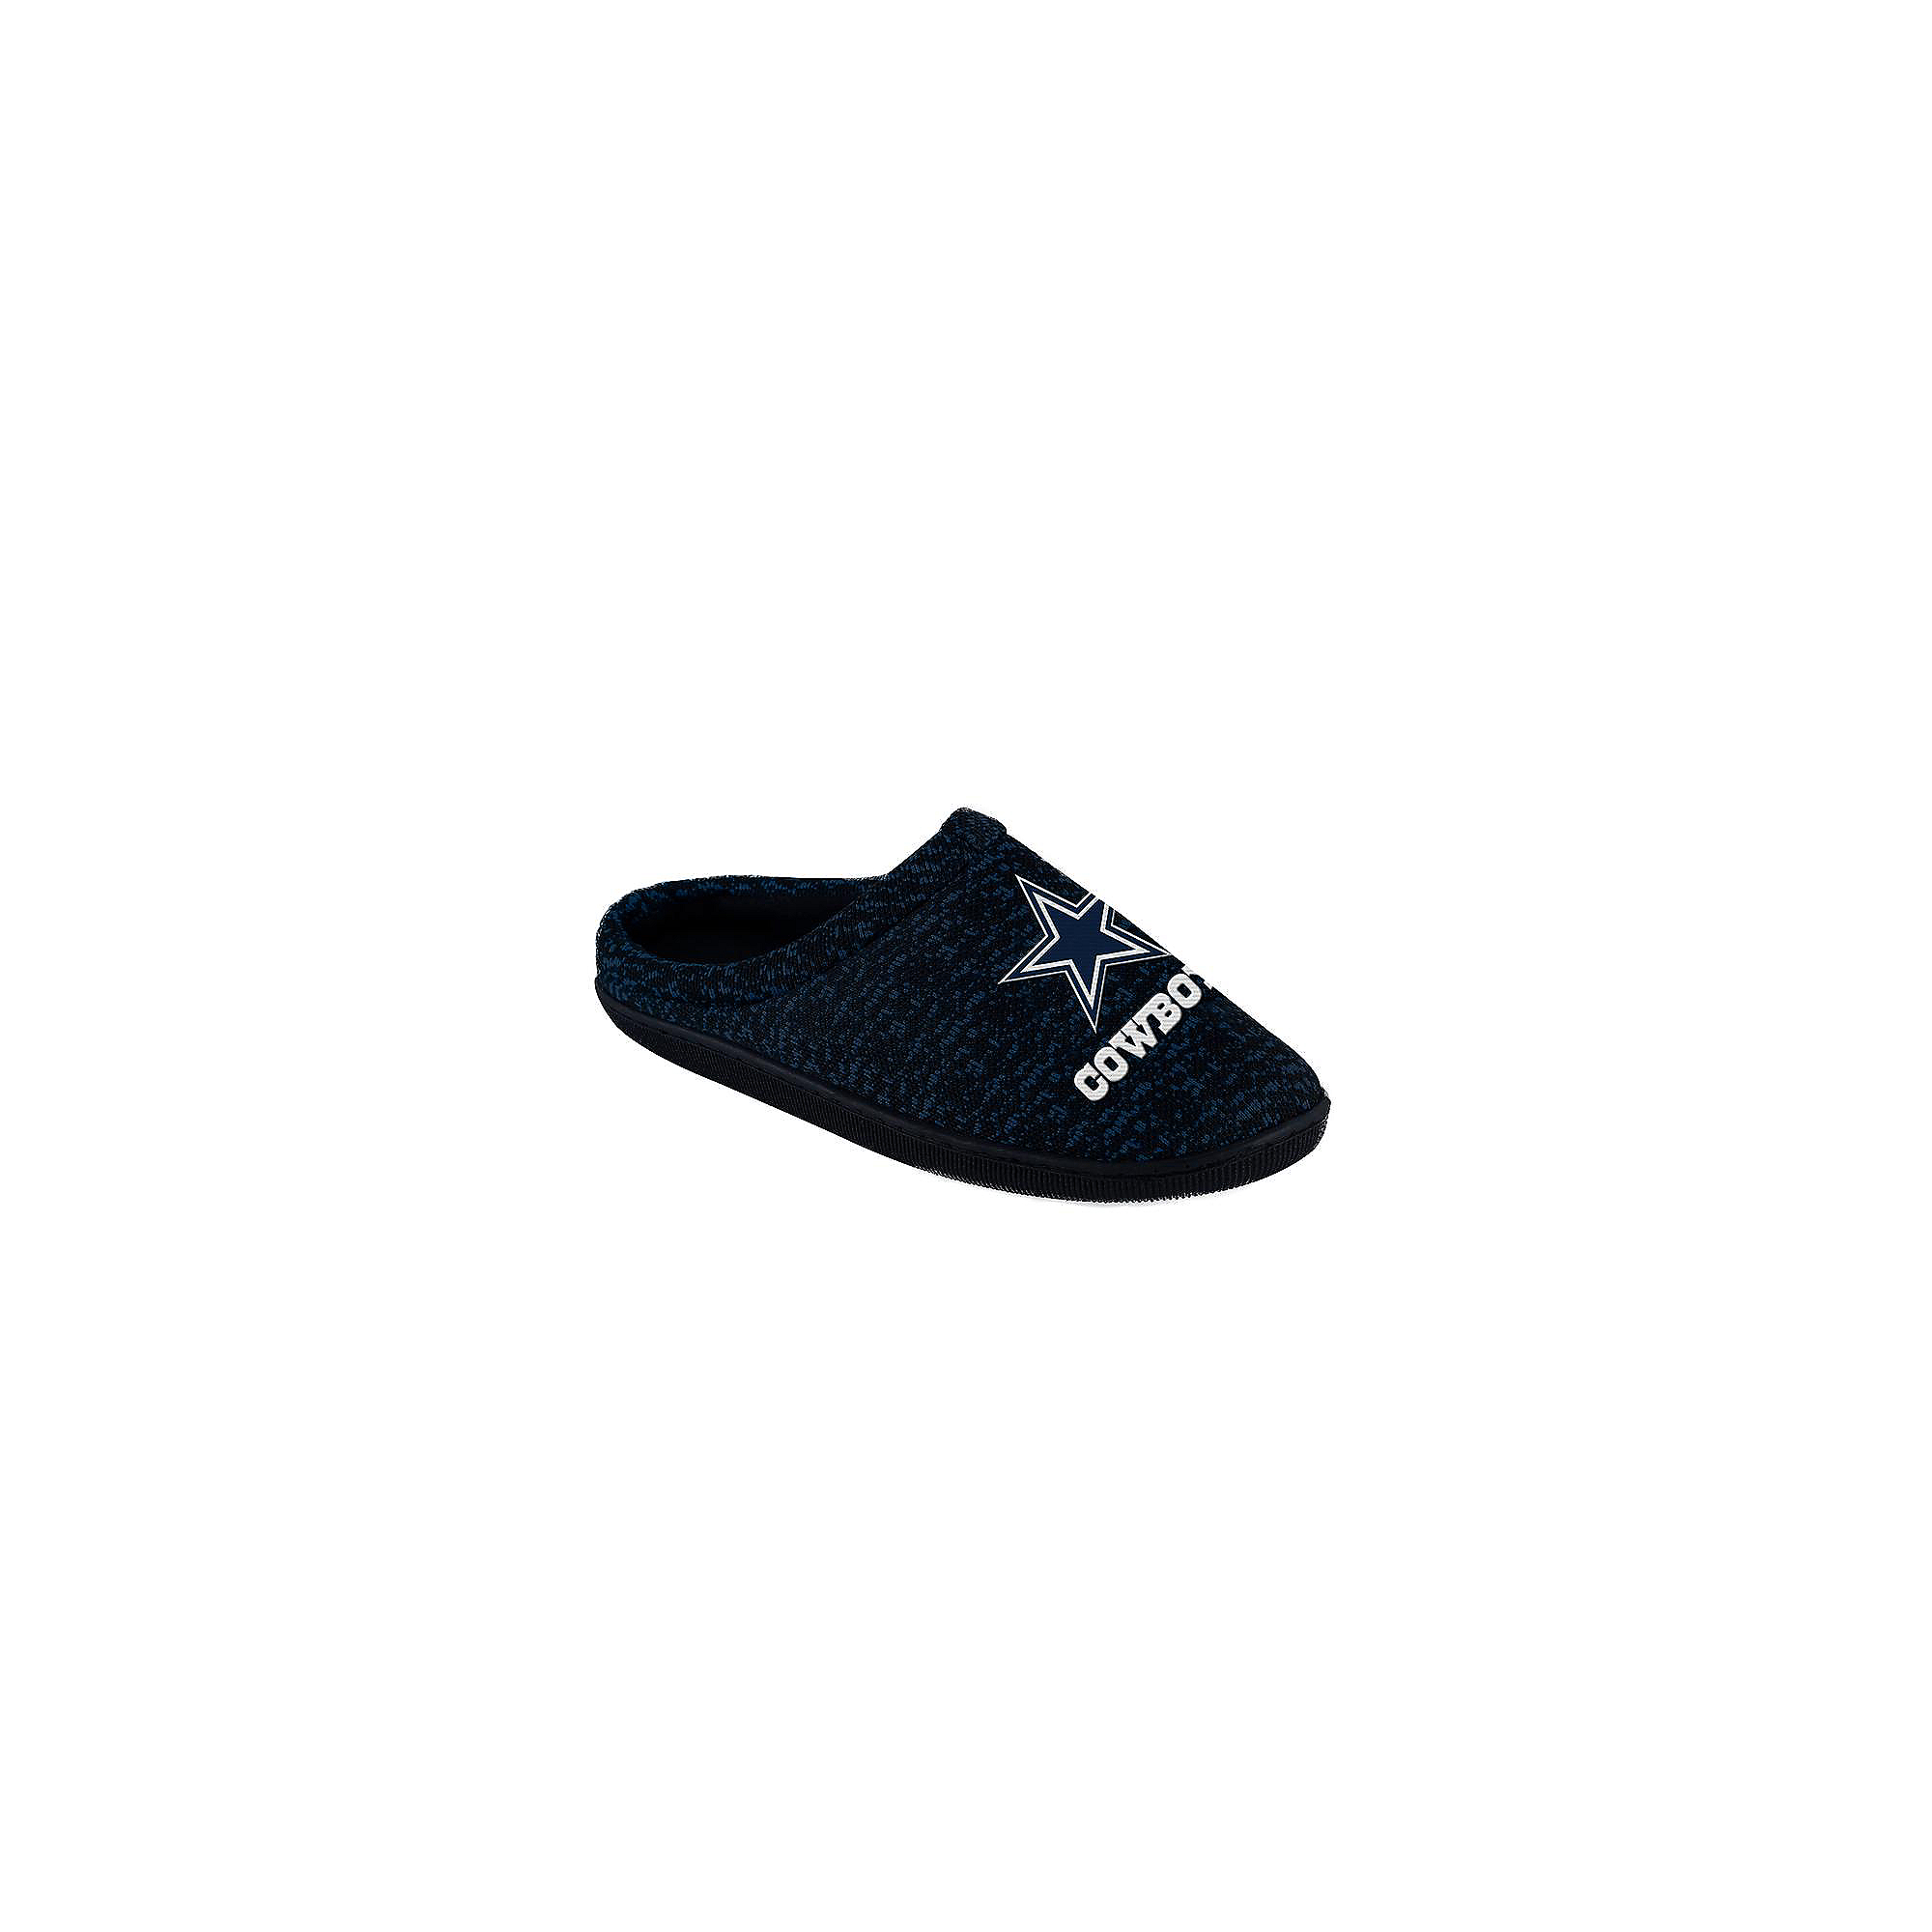 Dallas Cowboys Men's Sole Slippers - Size Small